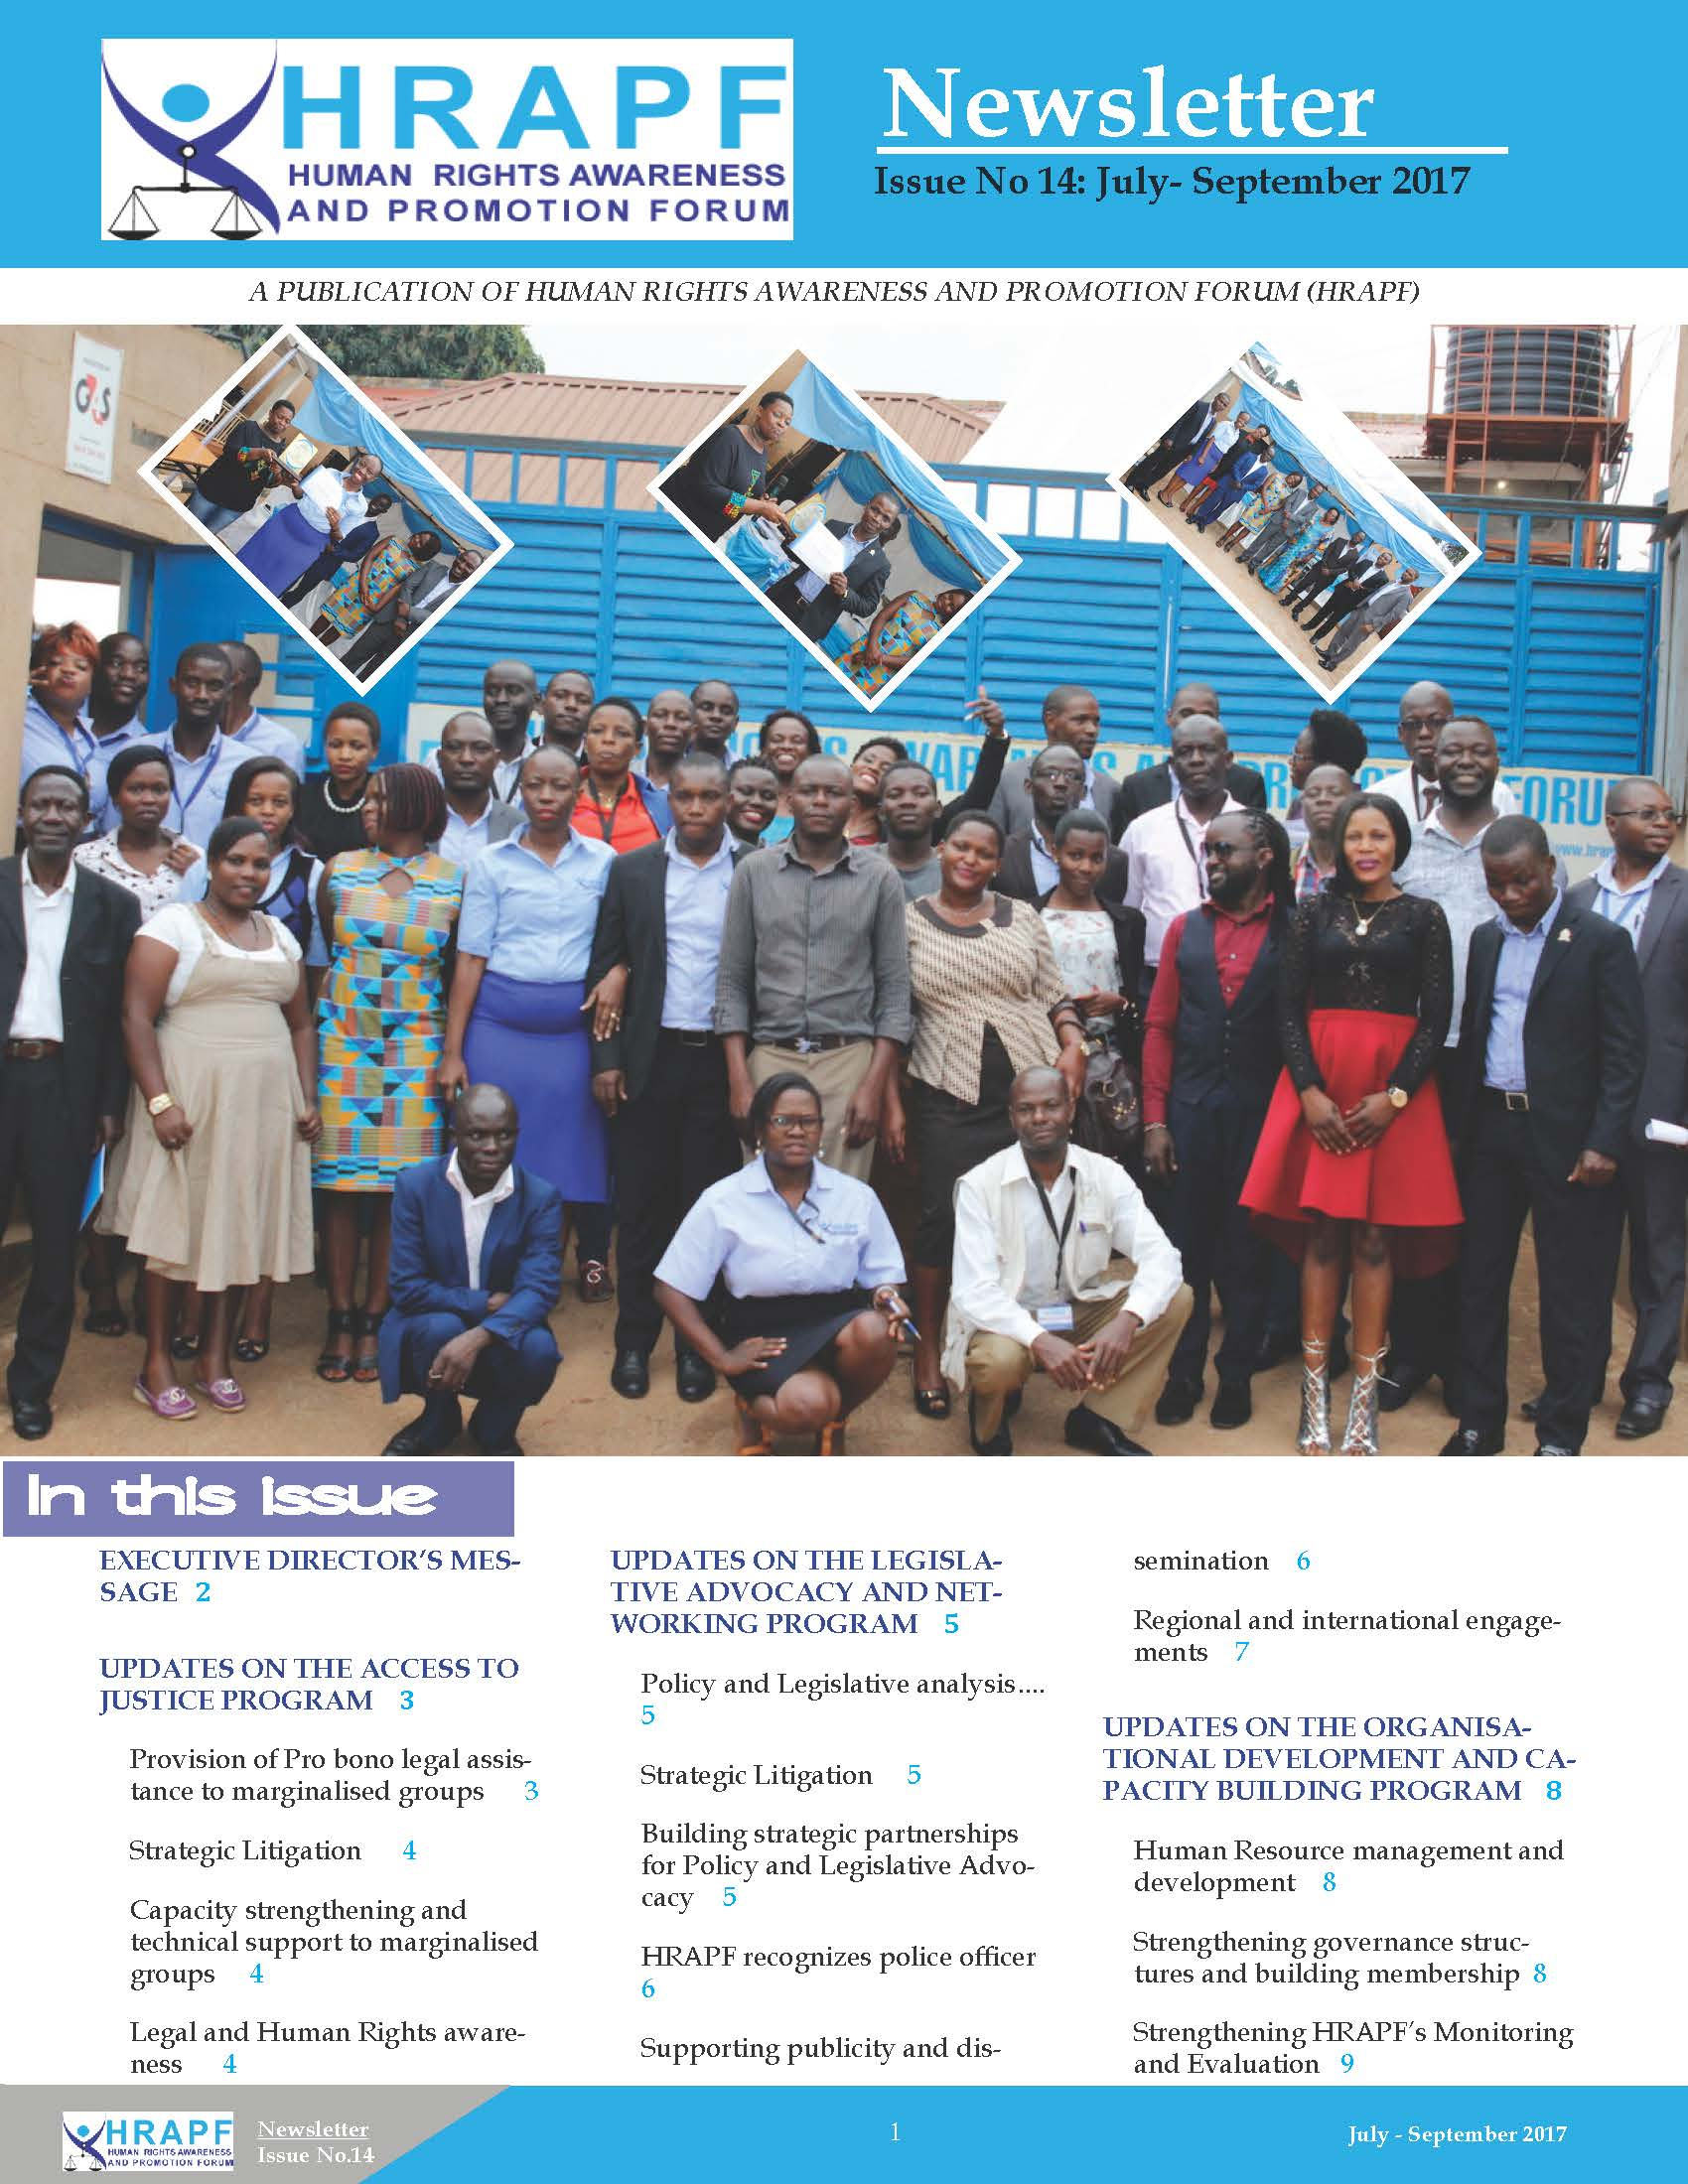 14th Issue of HRAPF Newsletter April to June 2017